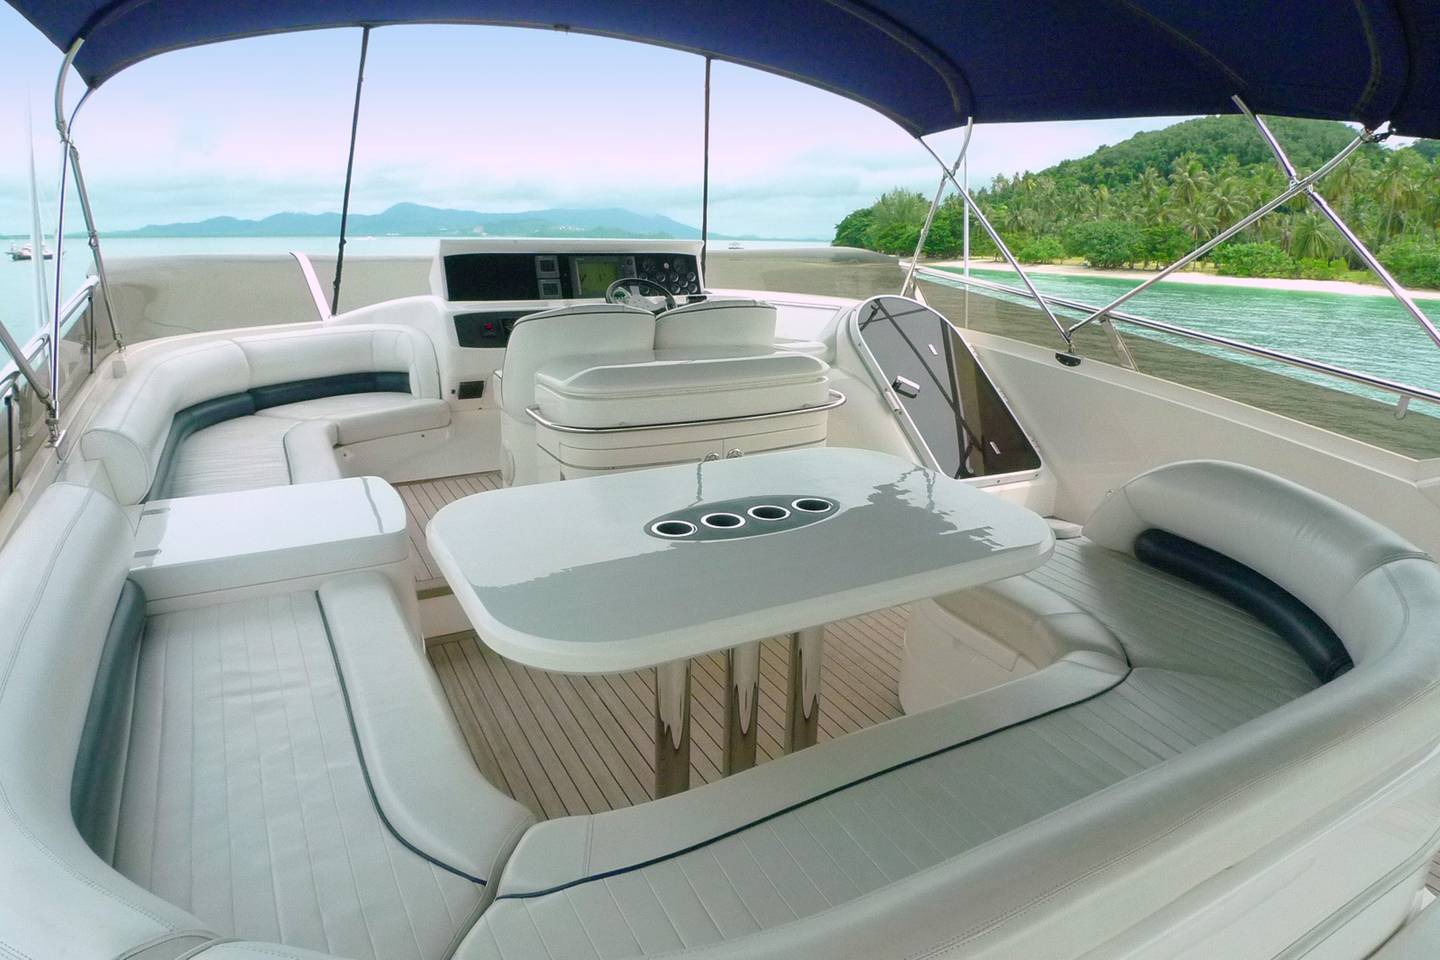 Fully catered Luxury Yacht in amazing Thailand photo 25541143